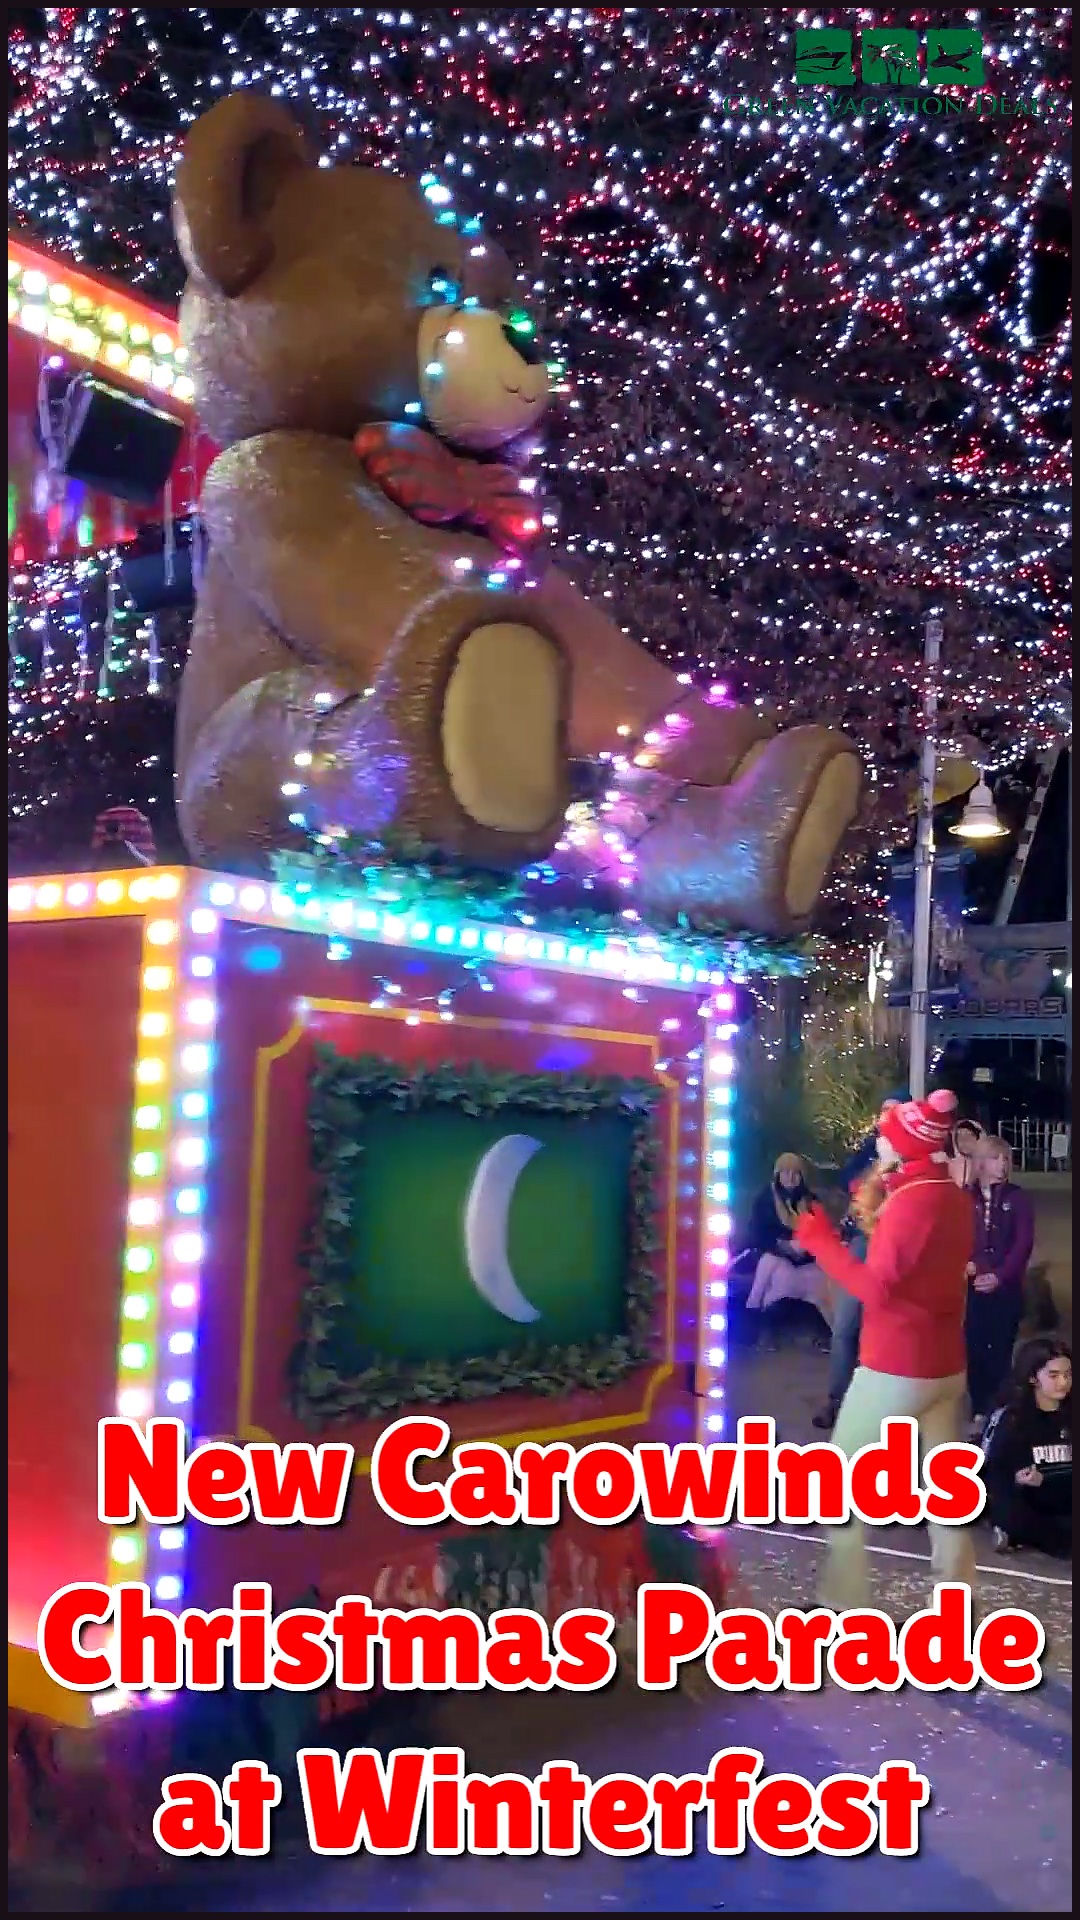 Christmas Singer At Carowinds Winterfest 2020 Travel Ideas New Carowinds Christmas Parade at Winterfest Event